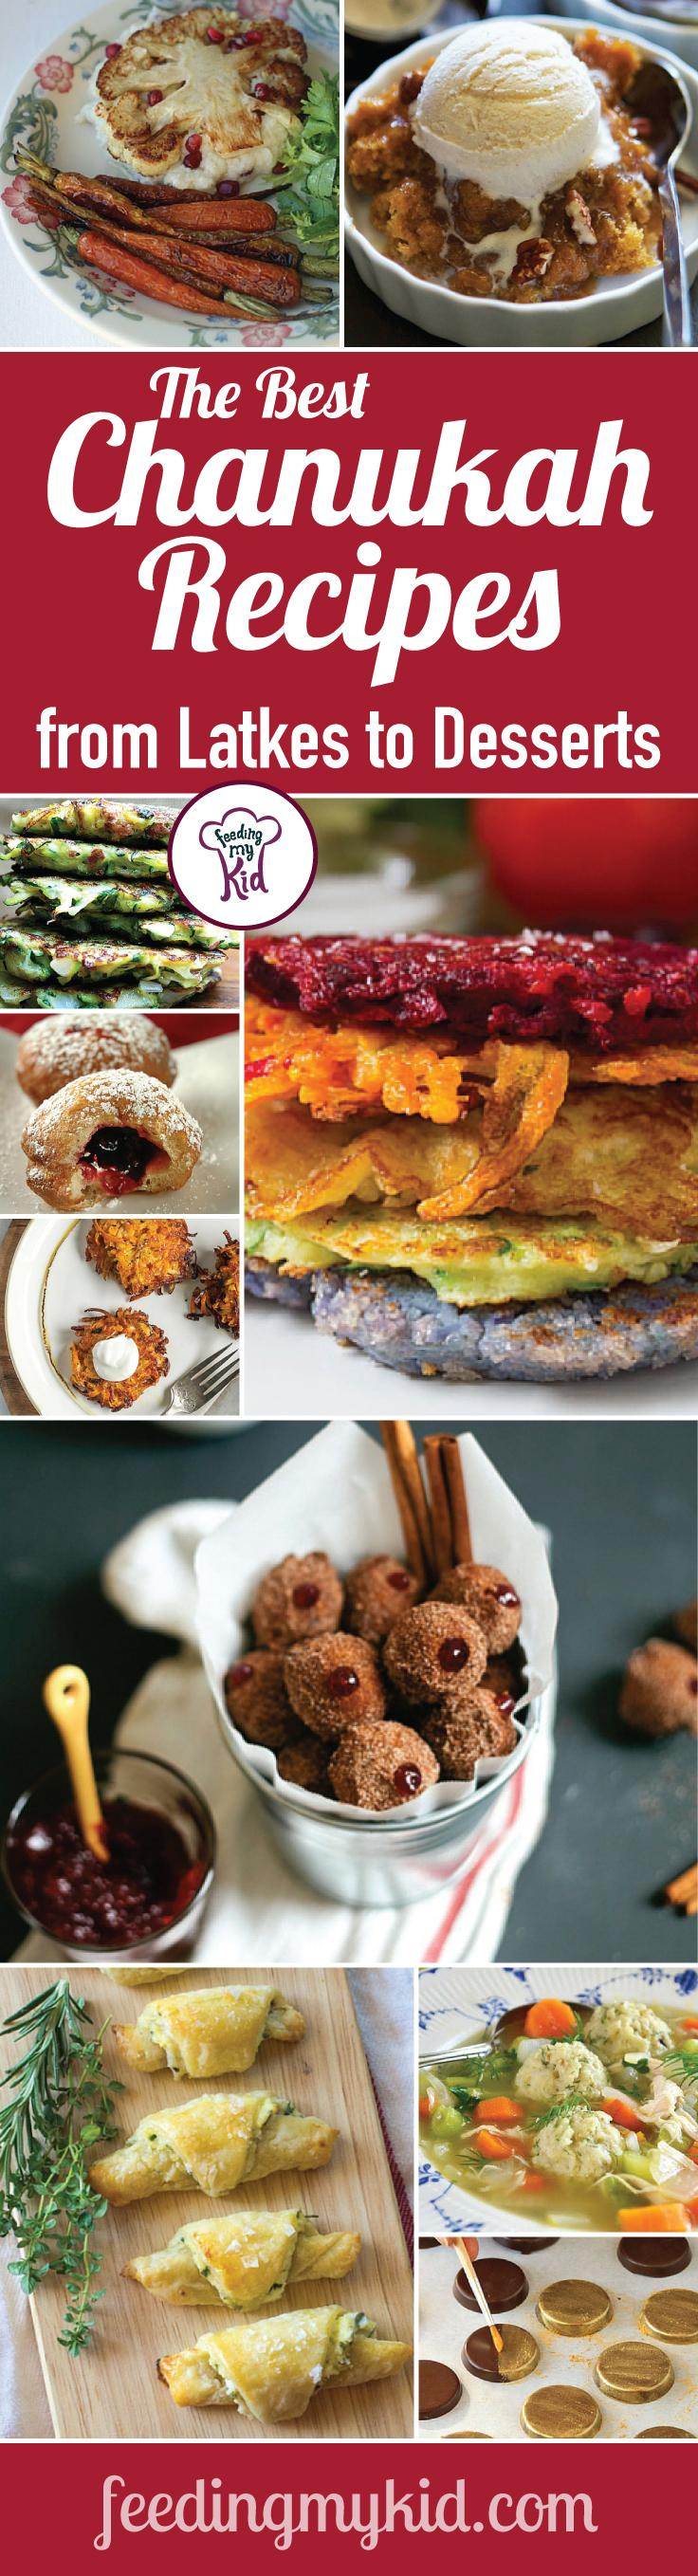 The Best Chanukah Recipes from Latkes to Desserts